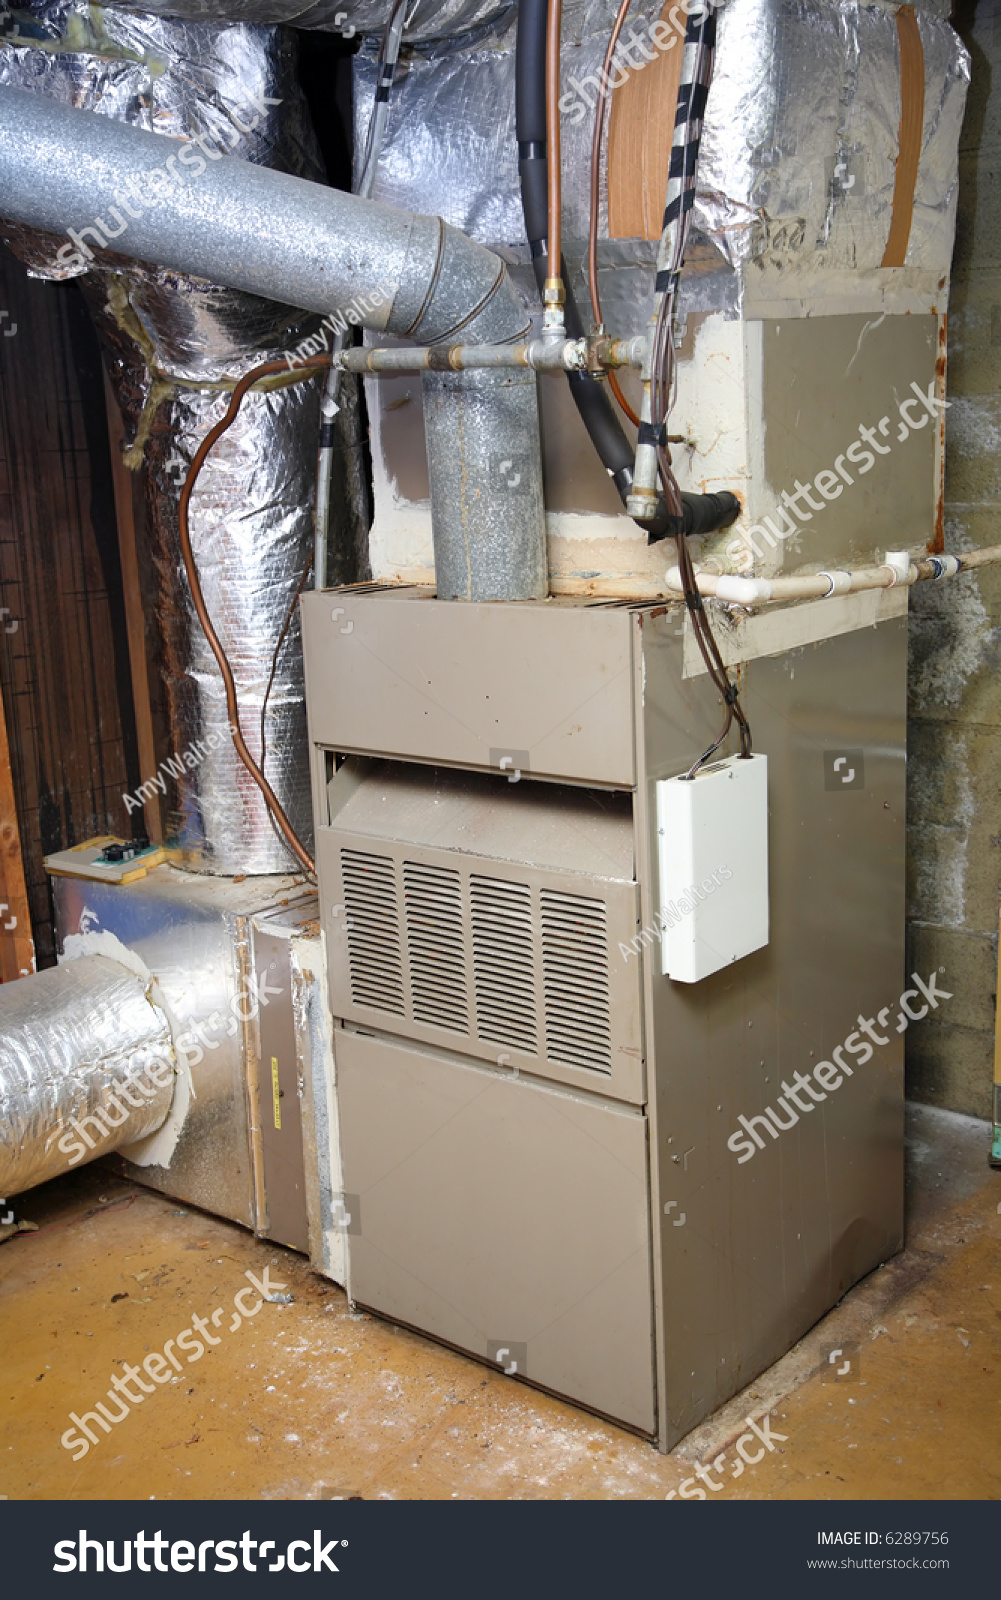 An Old Gas Furnace In A Dirty Basement Stock Photo